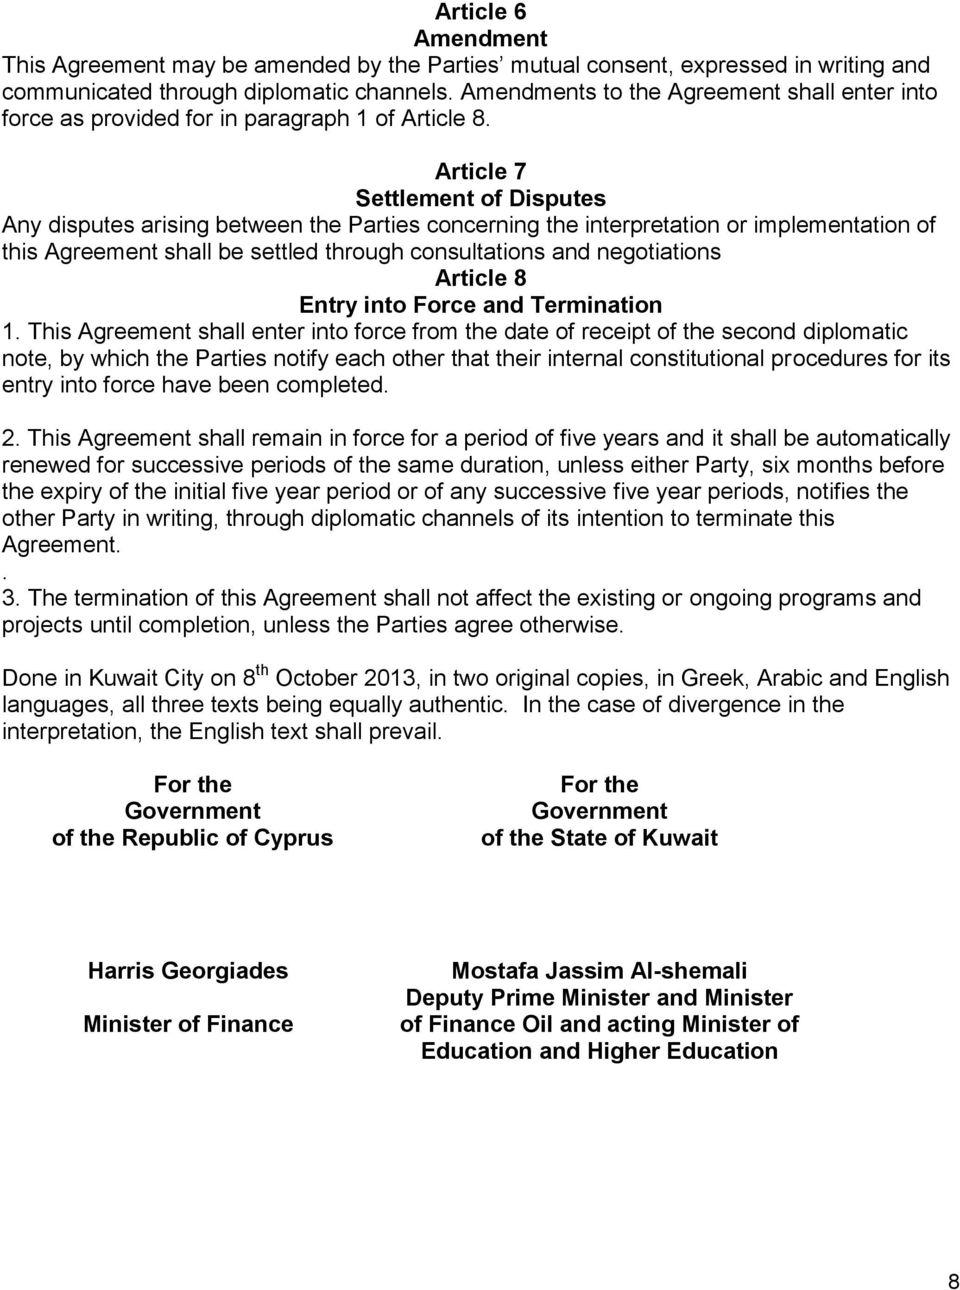 Article 7 Settlement of Disputes Any disputes arising between the Parties concerning the interpretation or implementation of this Agreement shall be settled through consultations and negotiations